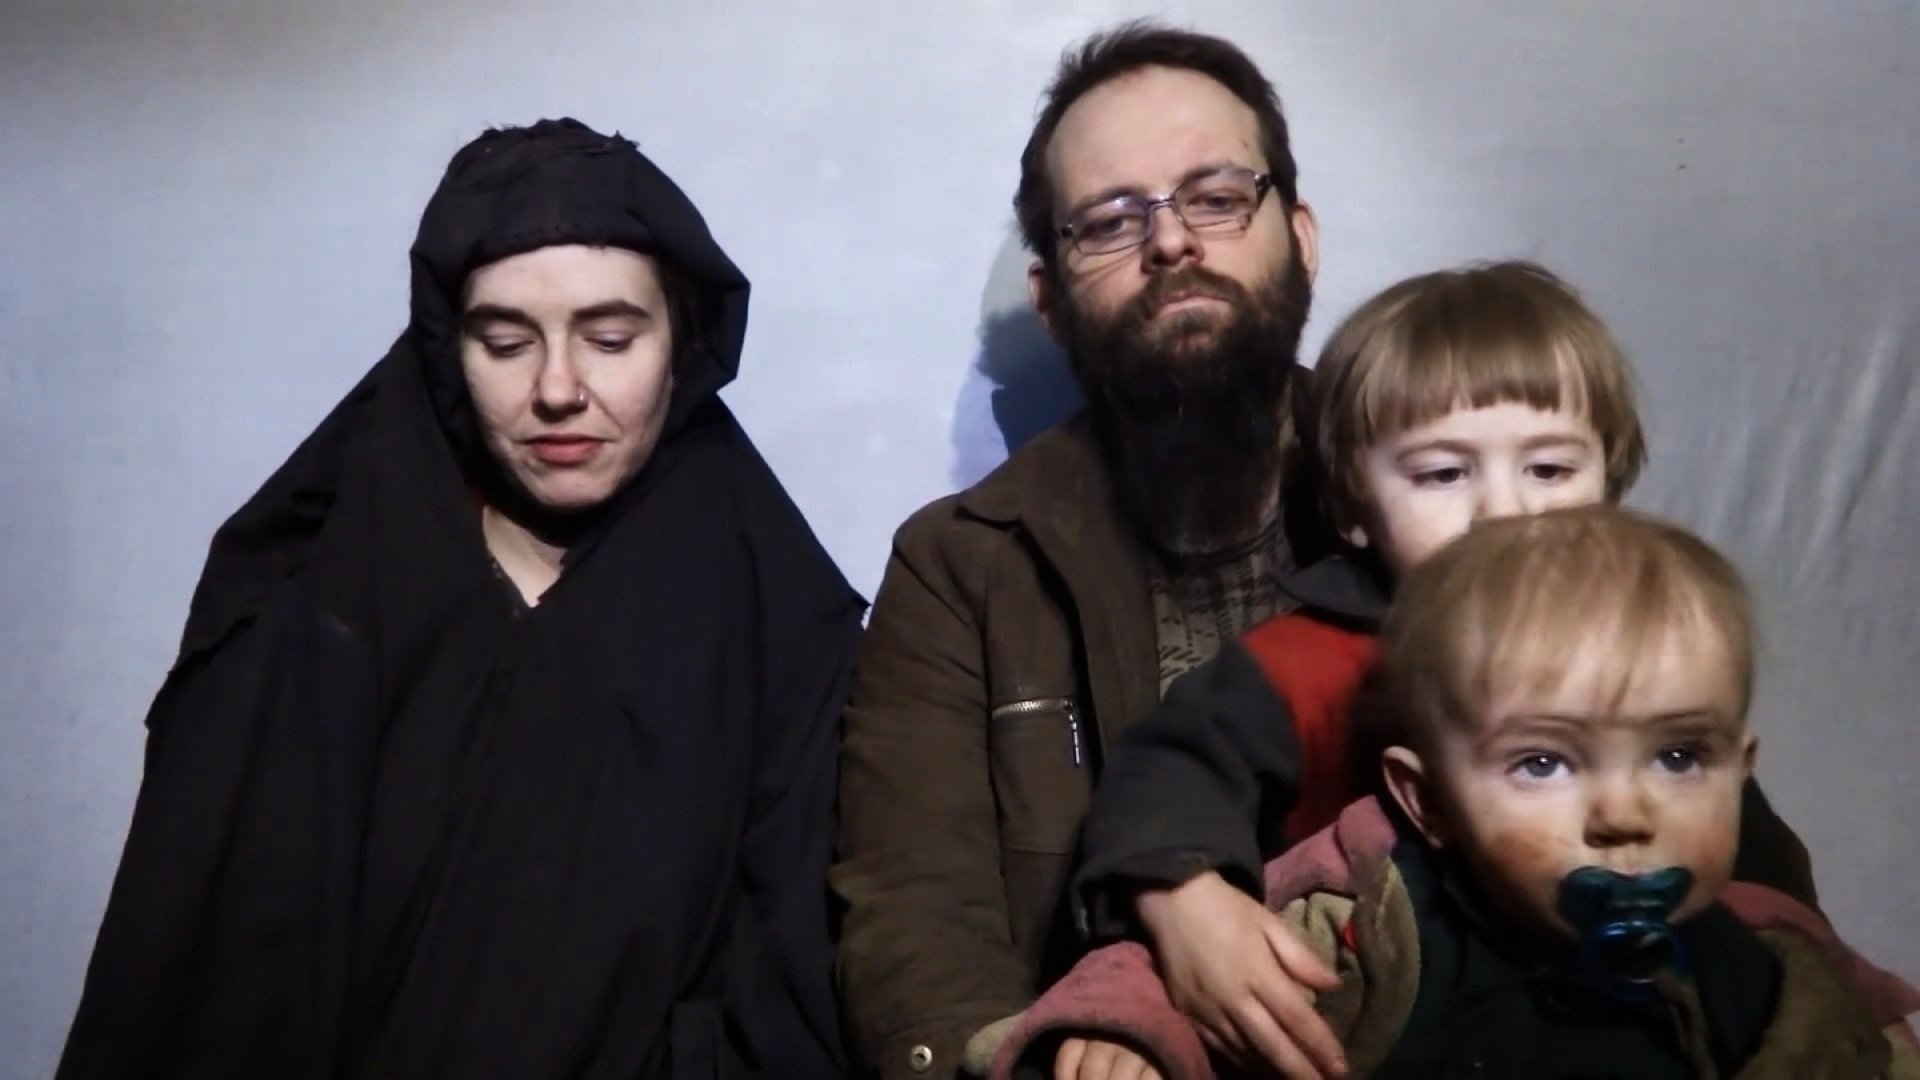 An American woman, her Canadian husband and their three children have been freed from captivity by Pakistani security forces, nearly five years after being taken hostage by the Taliban in Afghanistan.